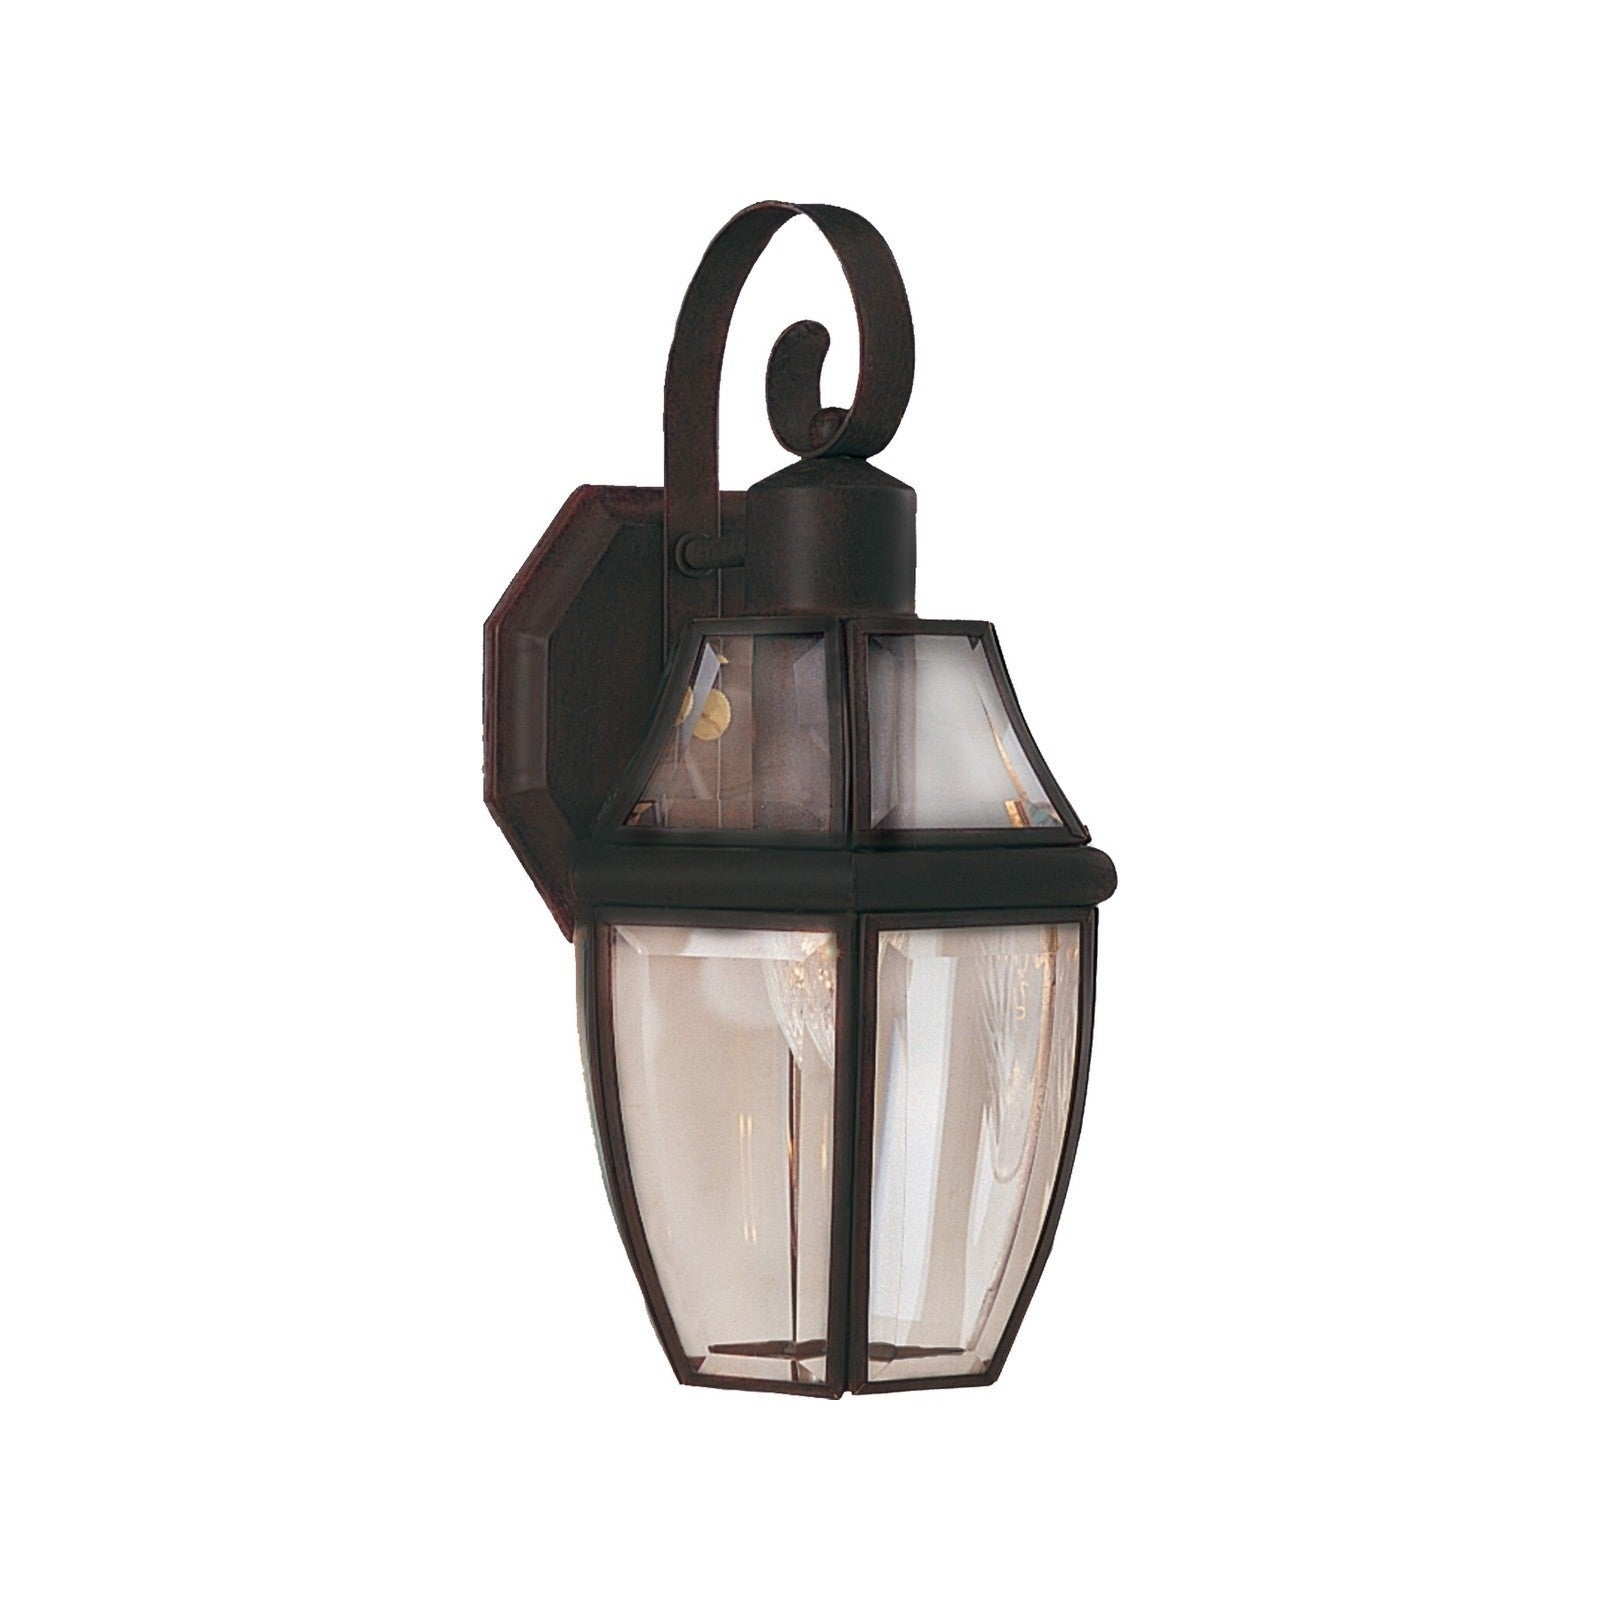 Maxim Solid Brass Clear Glass Shade South Park 1-light Outdoor Wall Mount (South Park 1-Light Outdoor Wall Lantern)